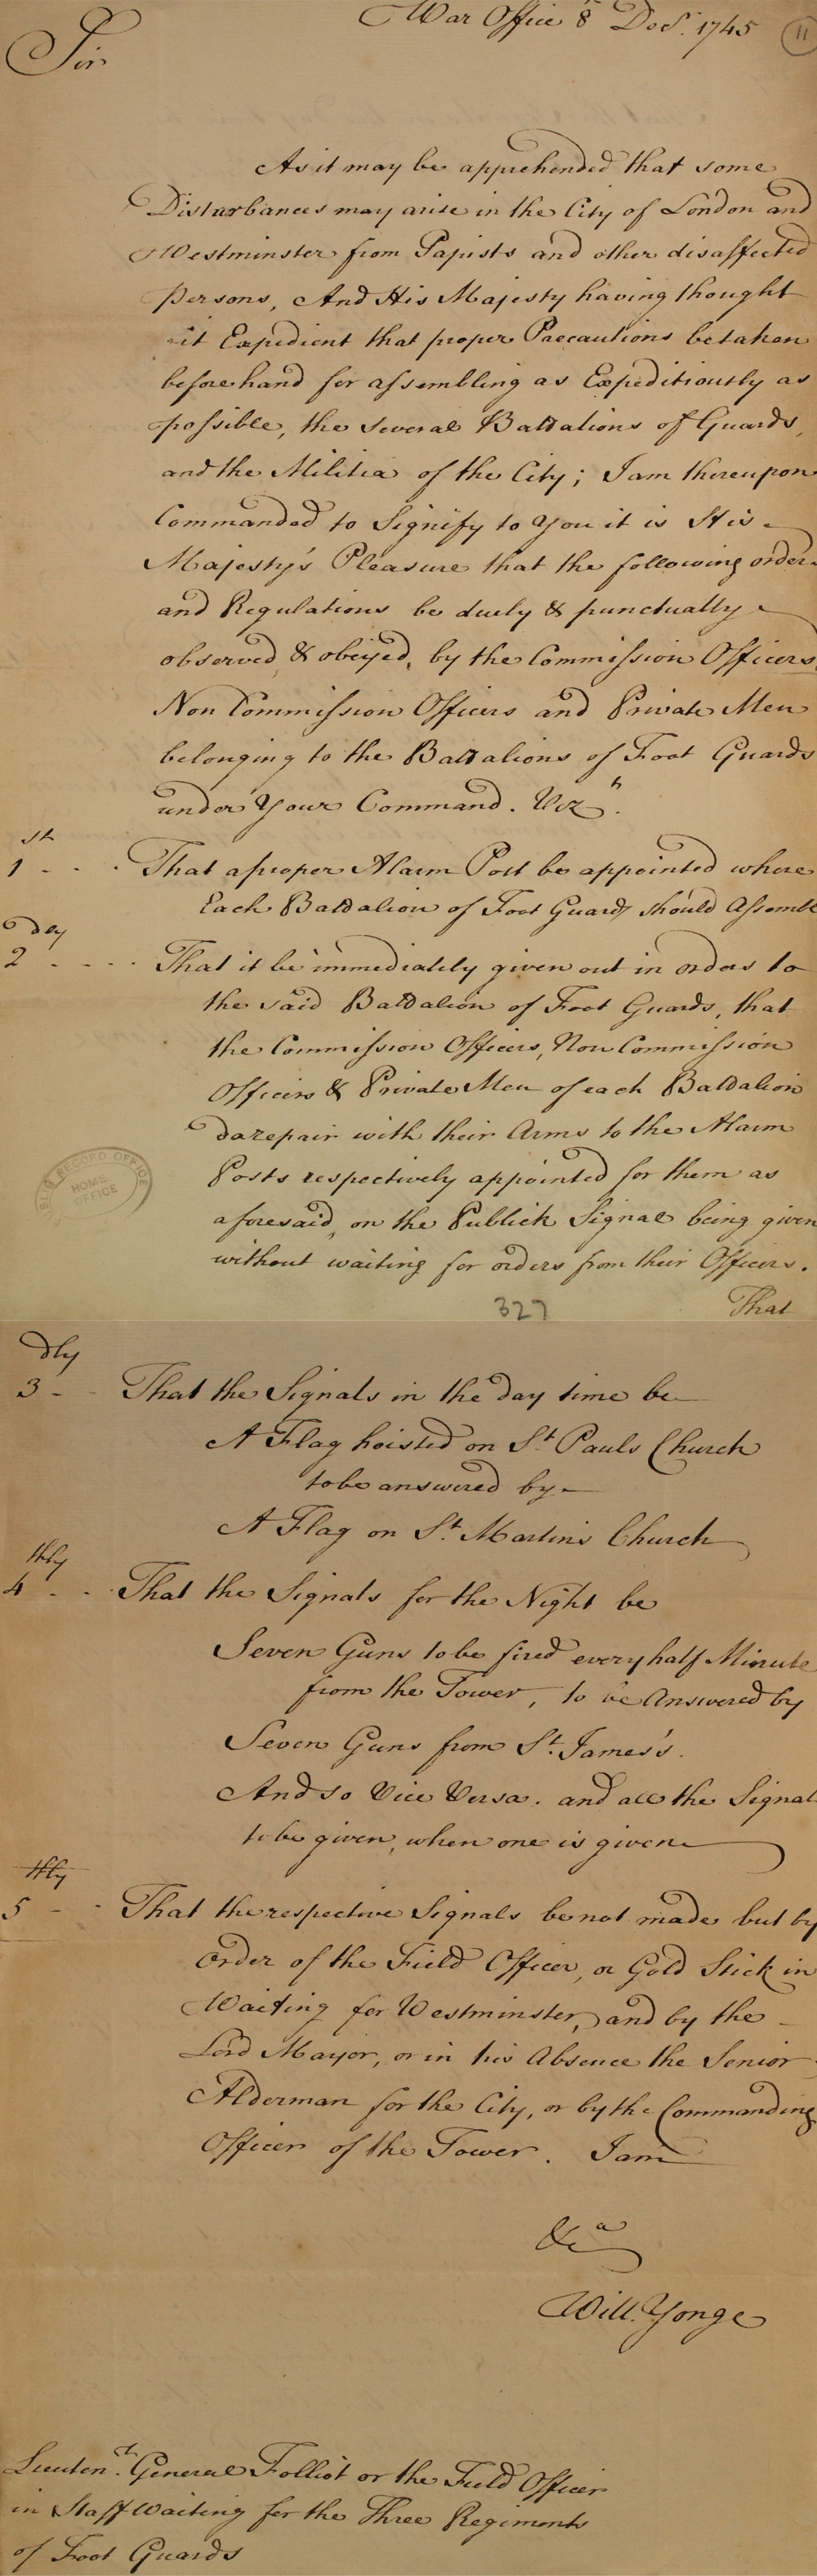 Letter from the William Yong, 1745 (SP 41/16/137)